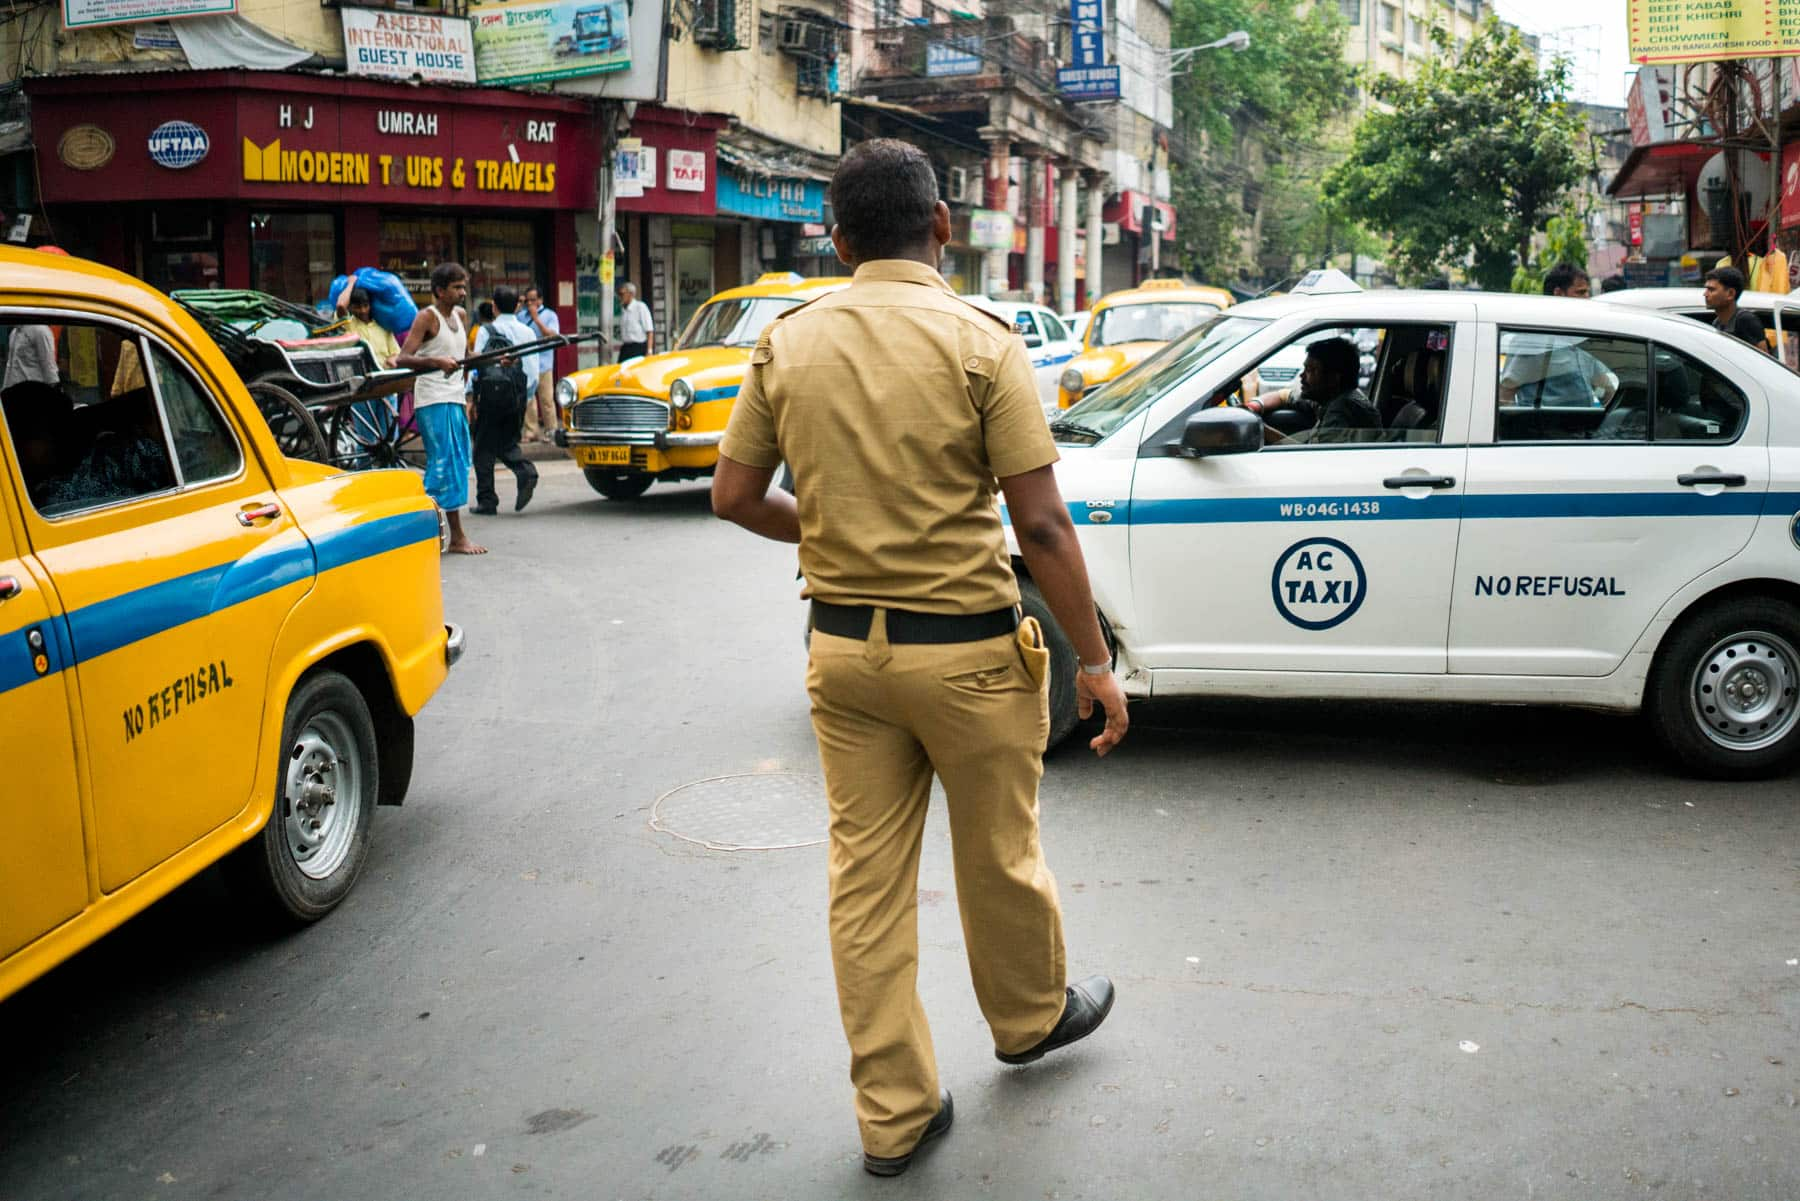 Guide to smoking weed in India - Police on the streets of Kolkata - Lost With Purpose travel blog